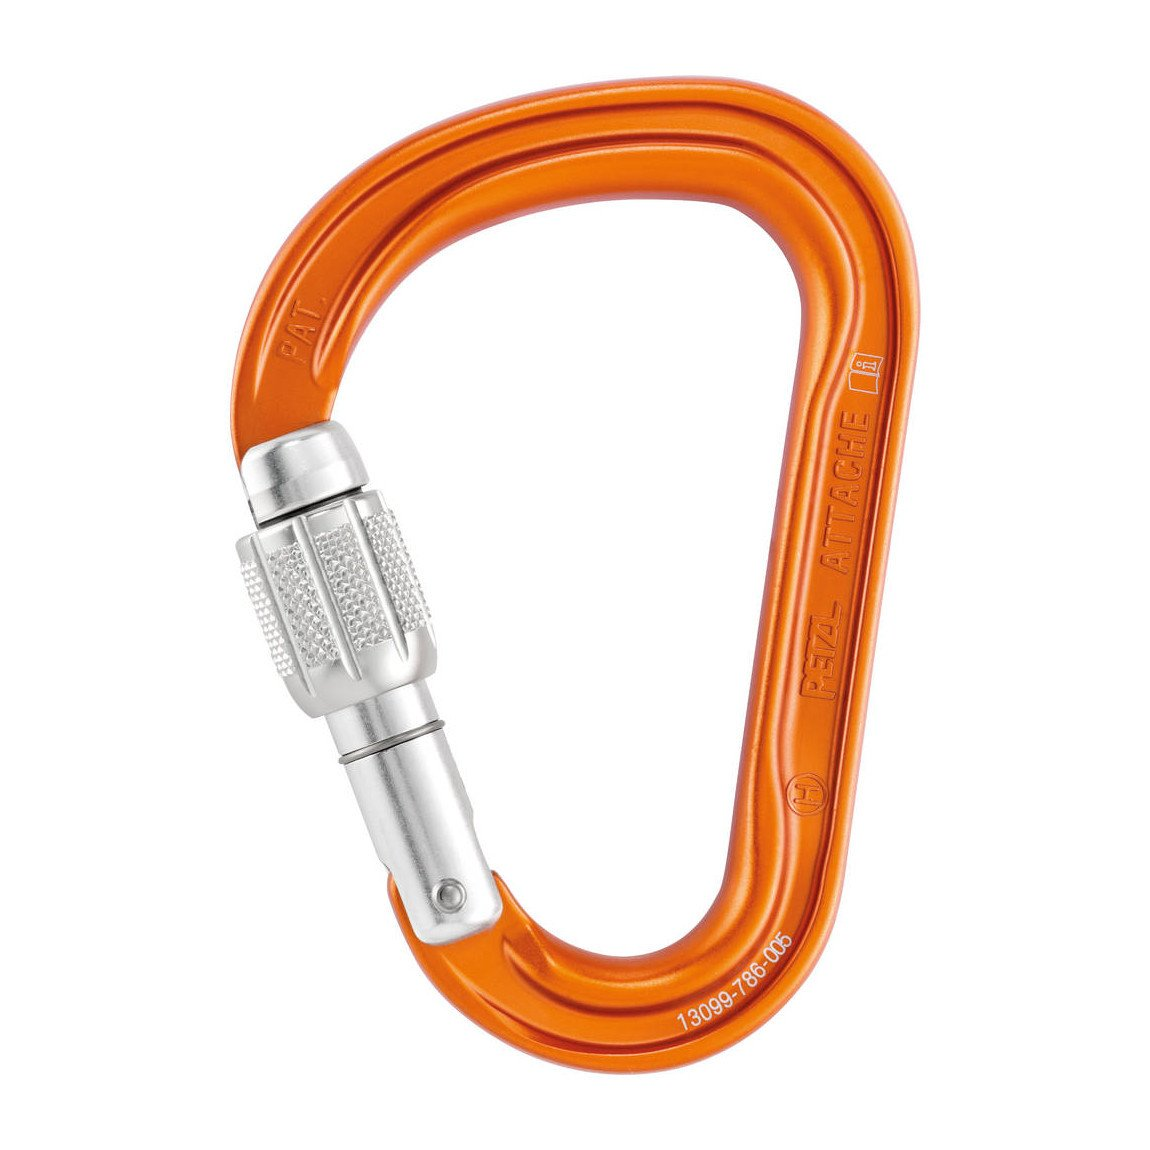 Petzl Attache Screw-Lock HMS Carabiner, in orange colour with silver lock